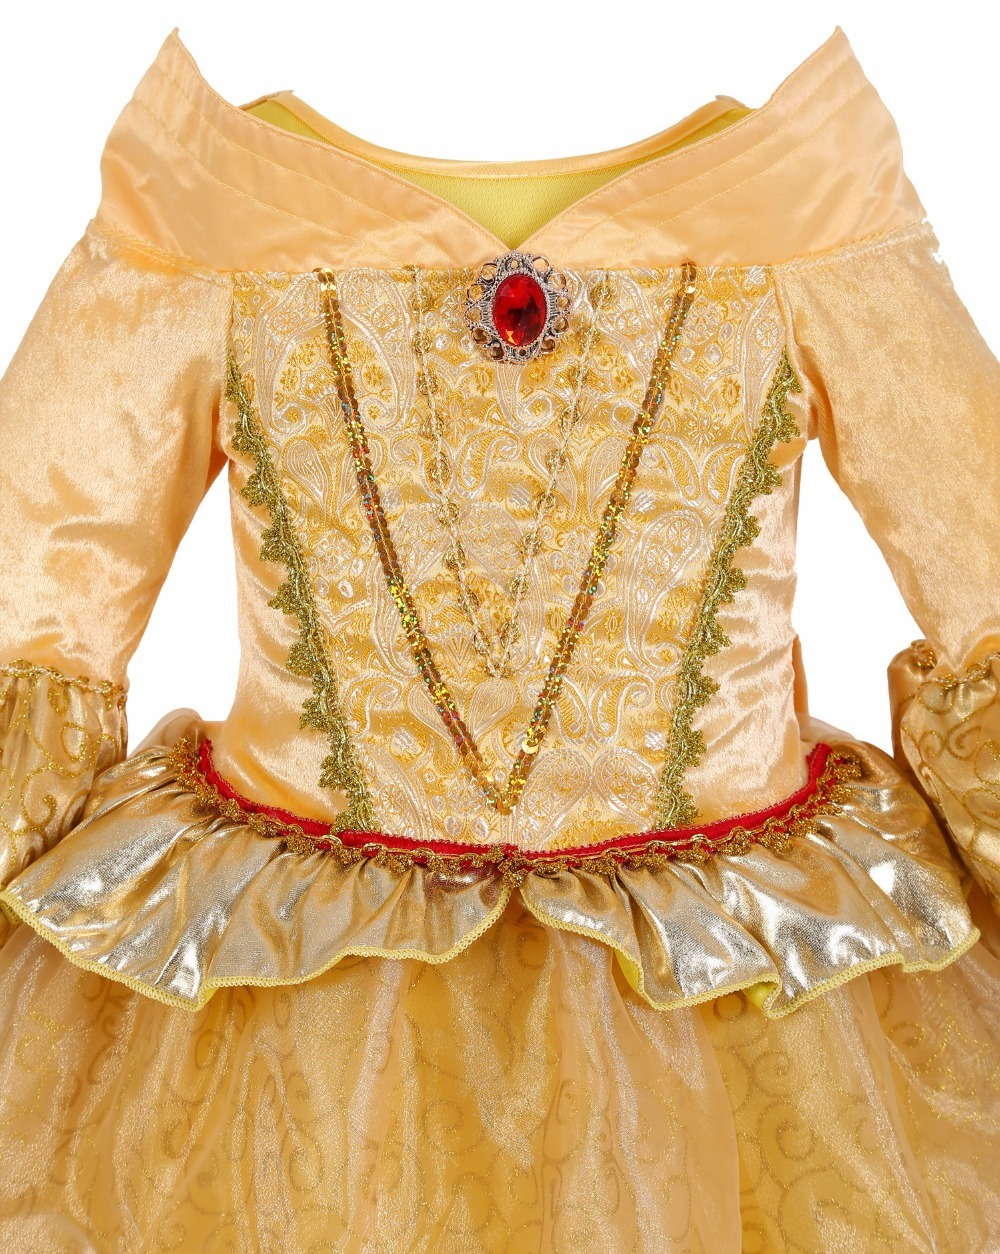 Beauty and beast cosplay dresses for girls belle princess kids girls costume dress christmas  5